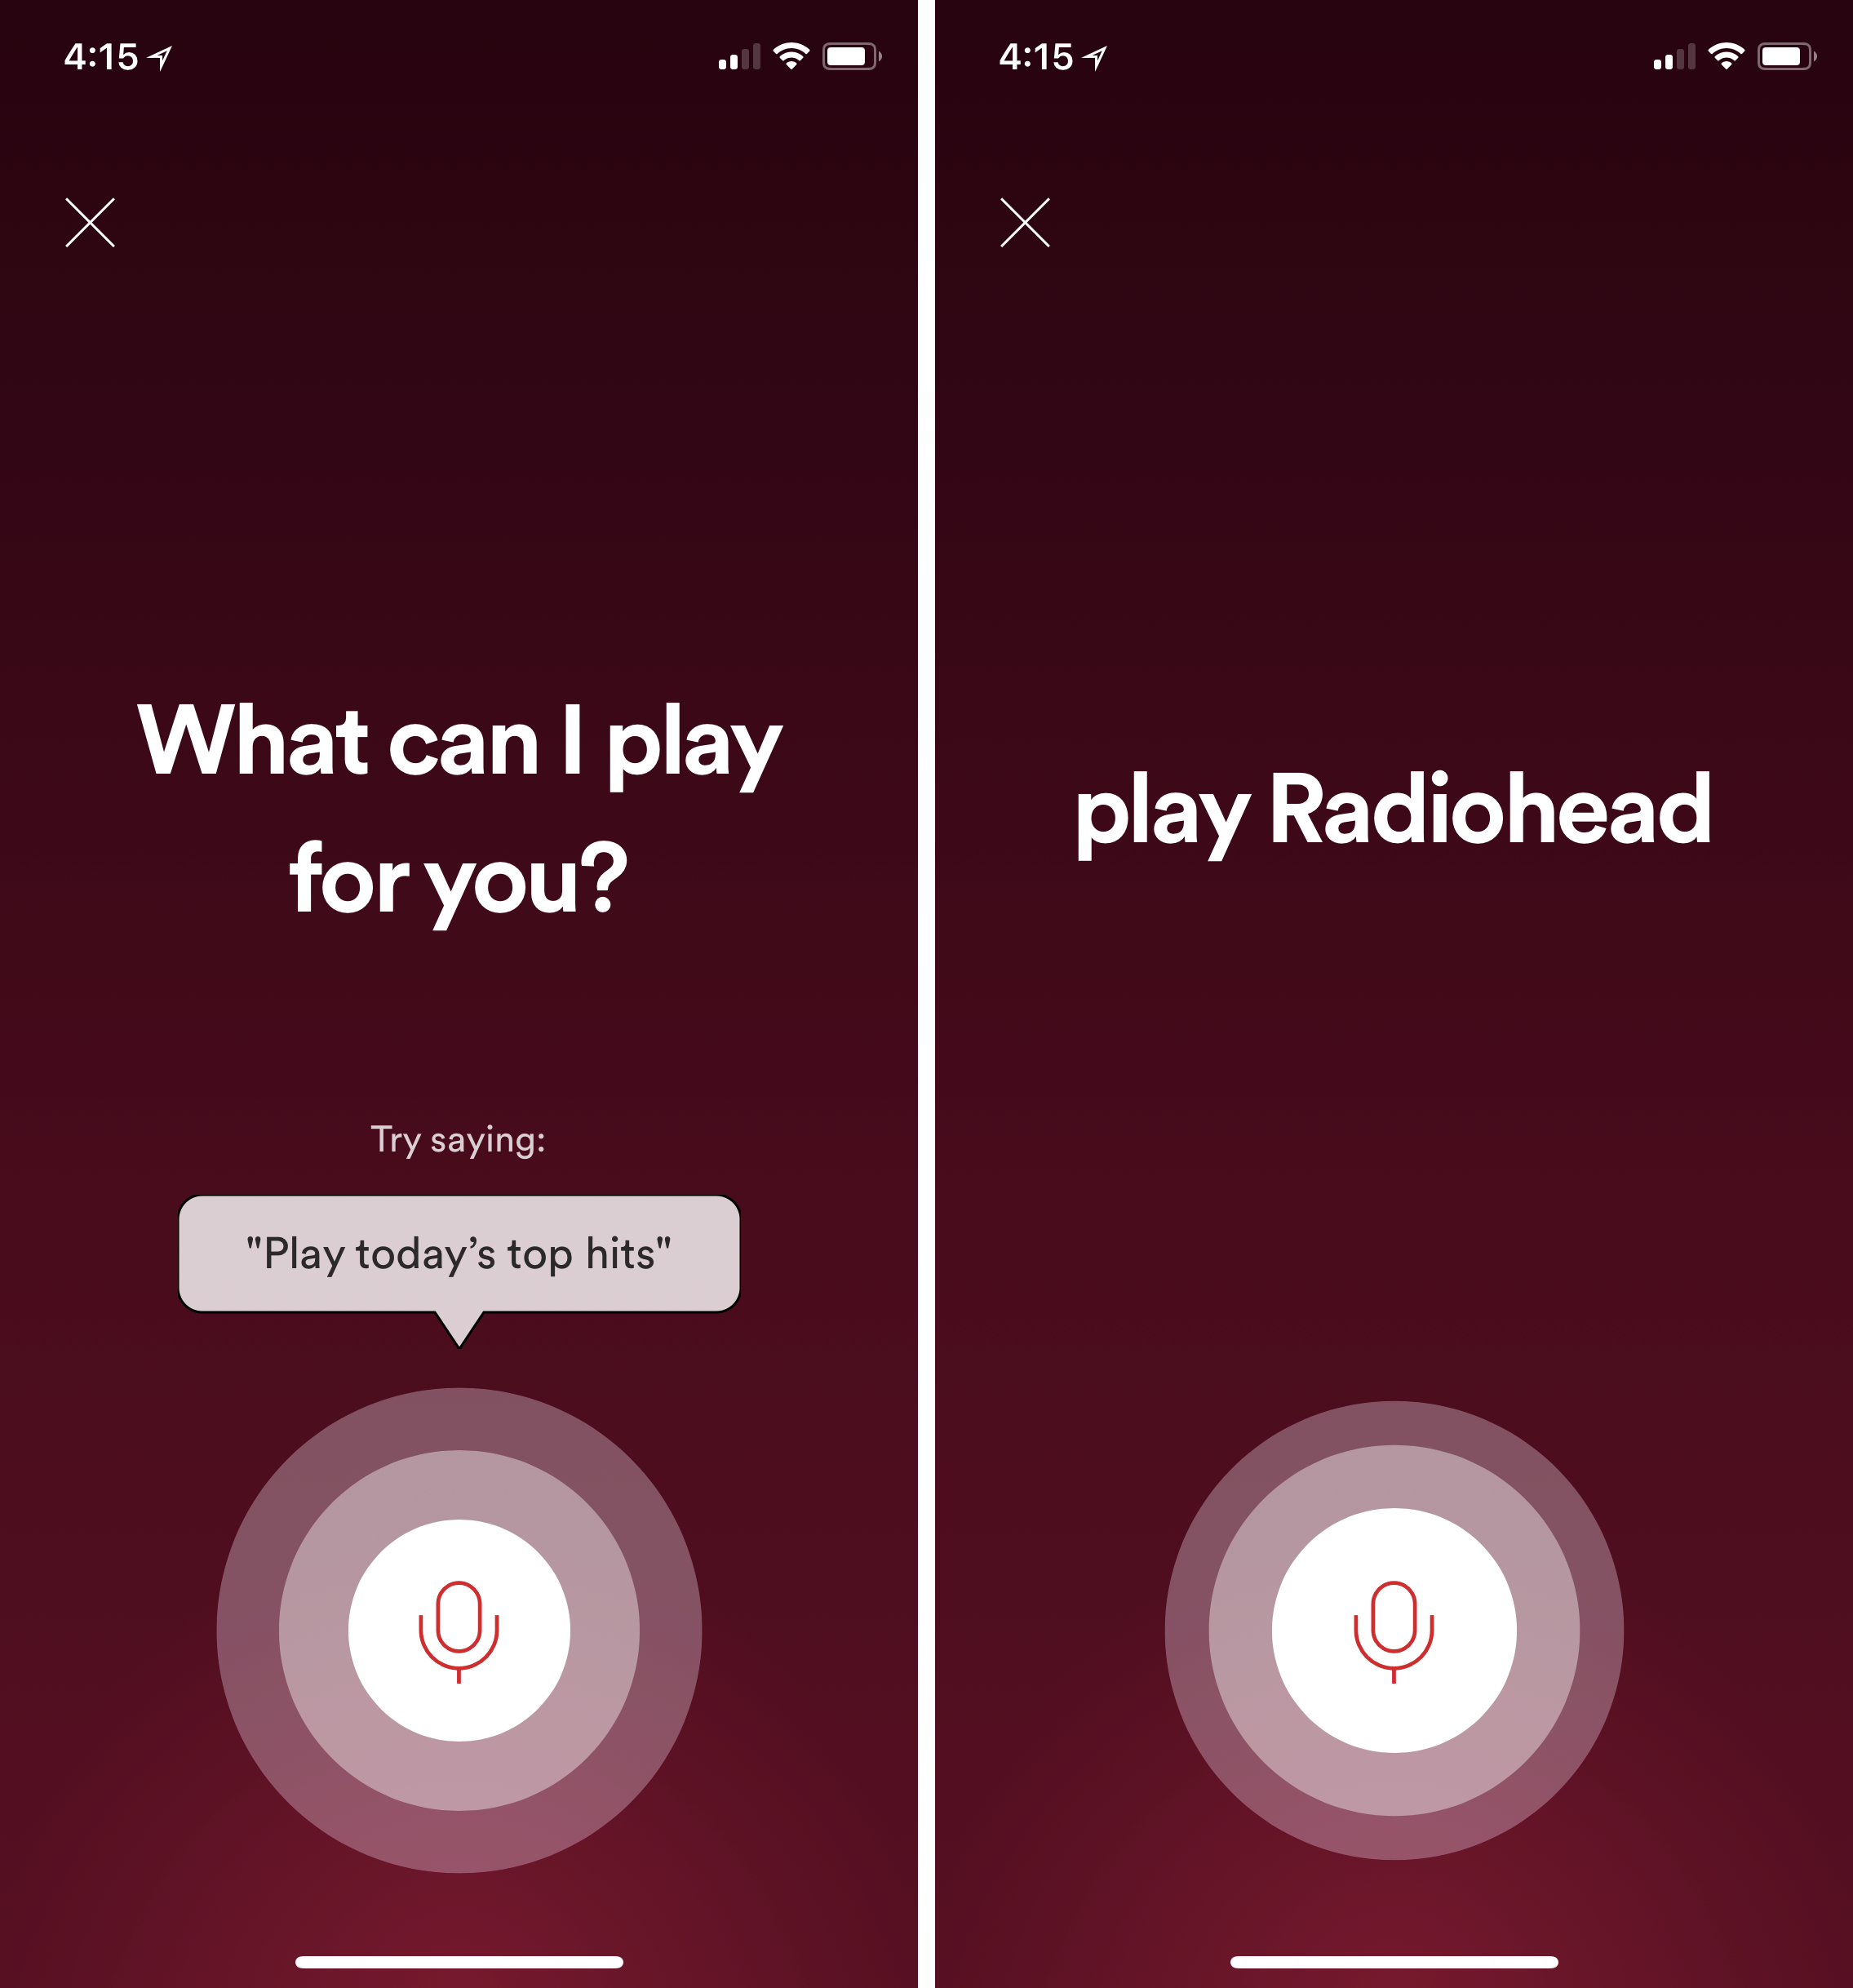 Spotify tests native voice assistant to rival Siri